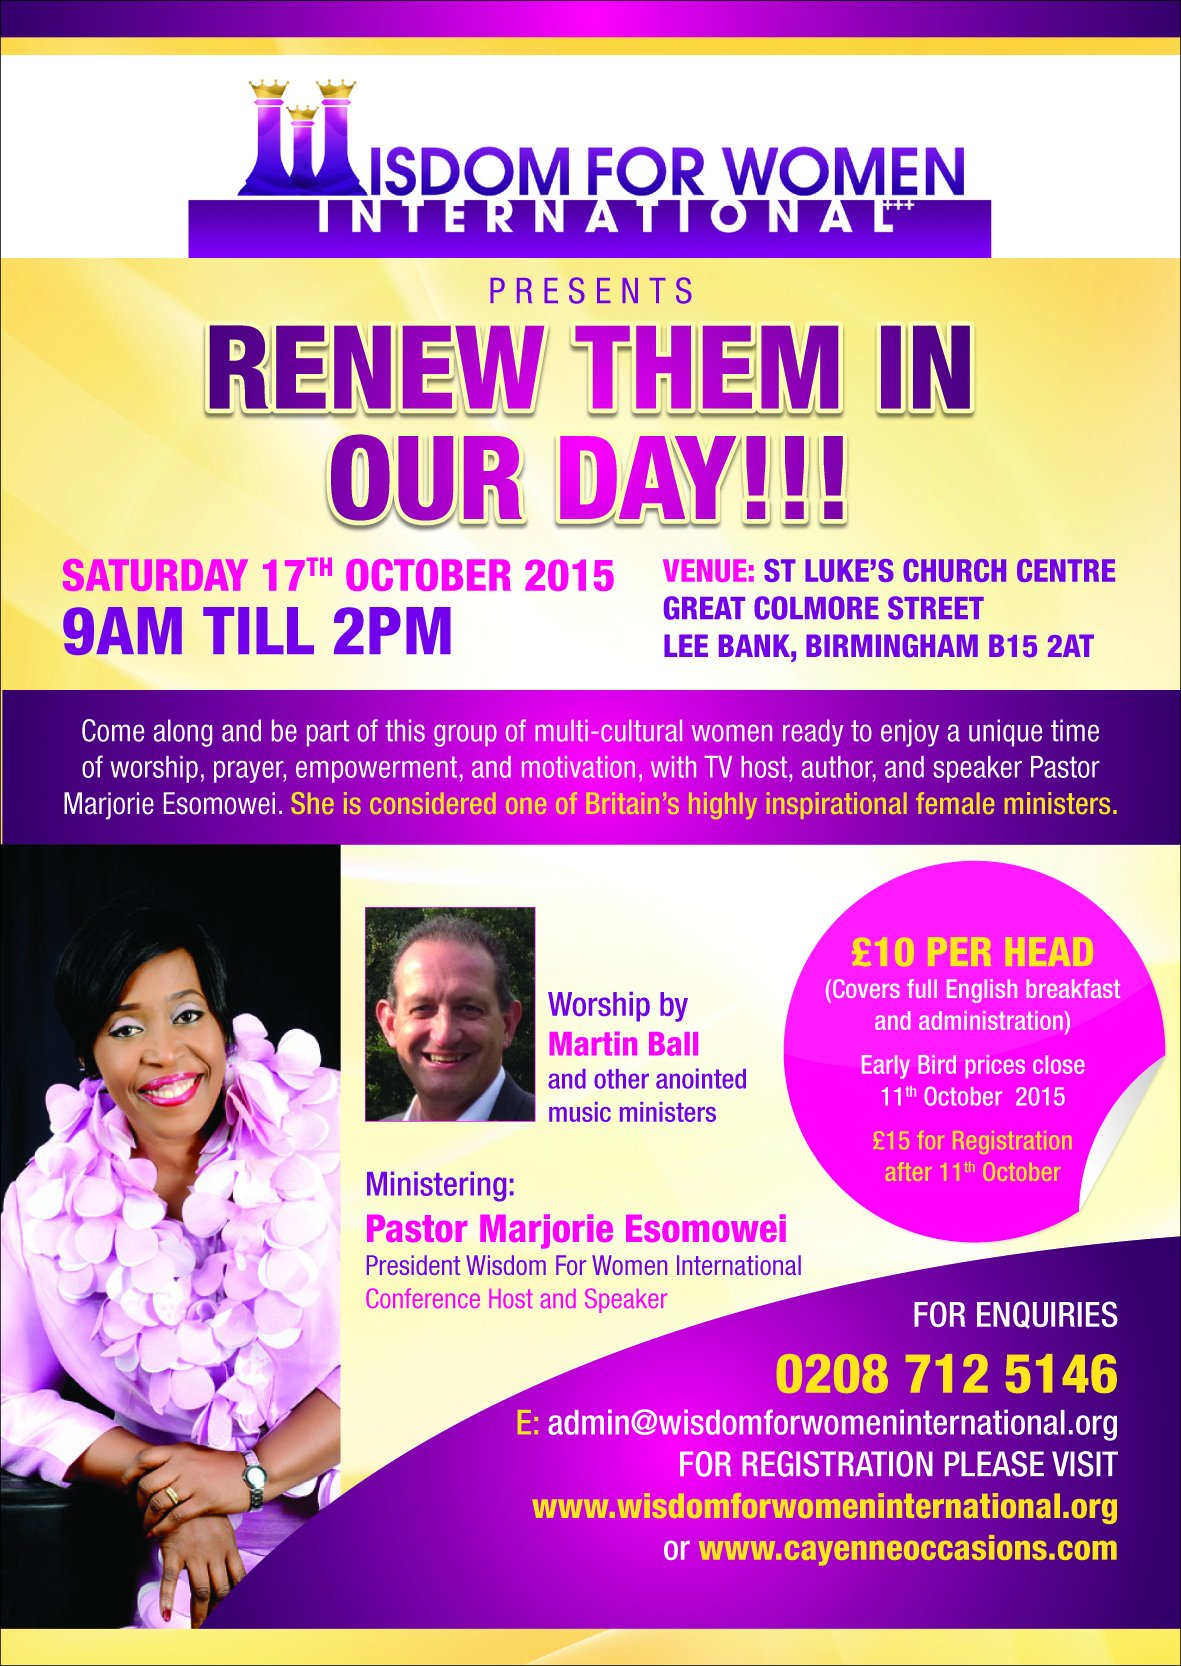 Renew Them in Our Day!!! @ St Luke's Church Centre, Great Colmore Street, Lee Bank, Birmingham B15 2AT